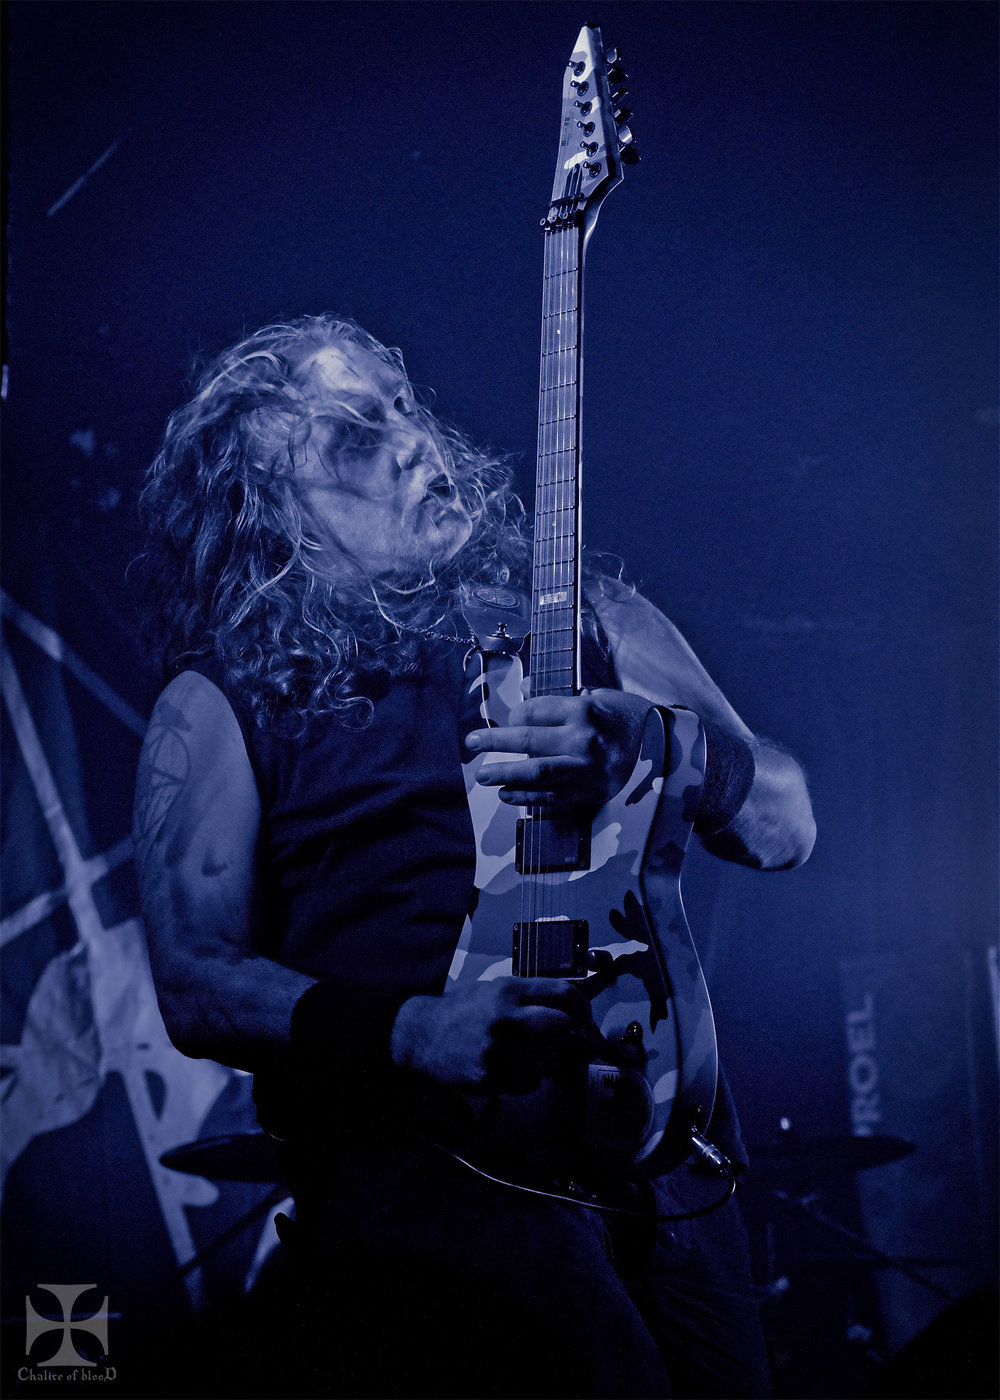 Marduk---78-watermarked.jpg